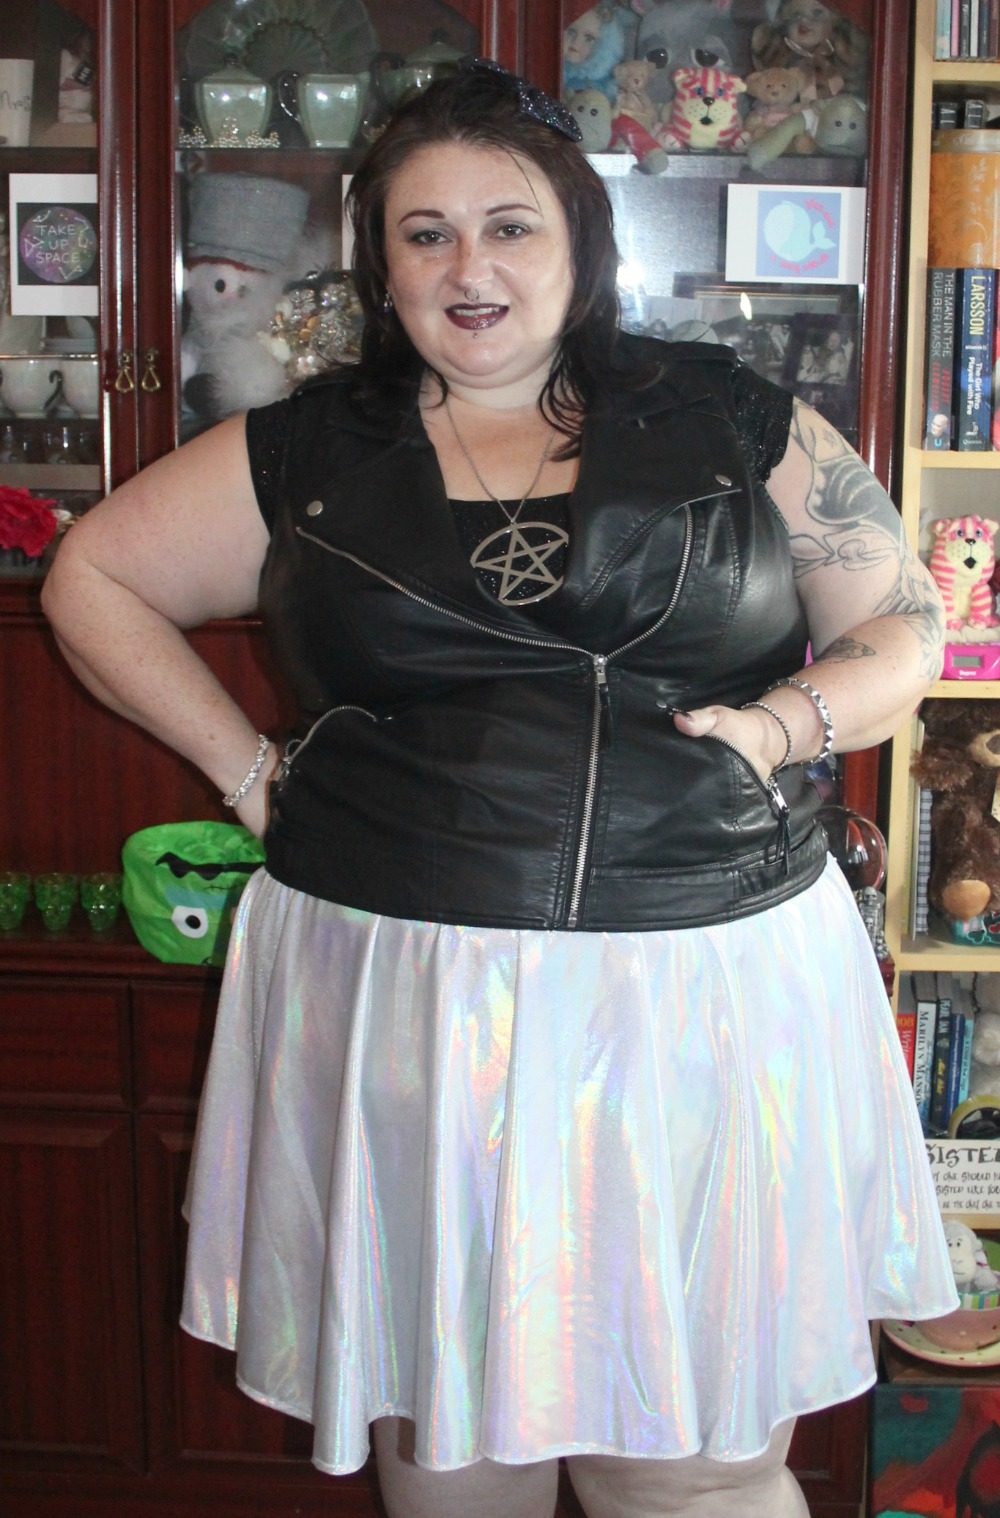 PLUS SIZE HOLOGRAPHIC SKIRT FROM INTERROBANG UK ETSY SELLER ALTERNATIVE FASHION